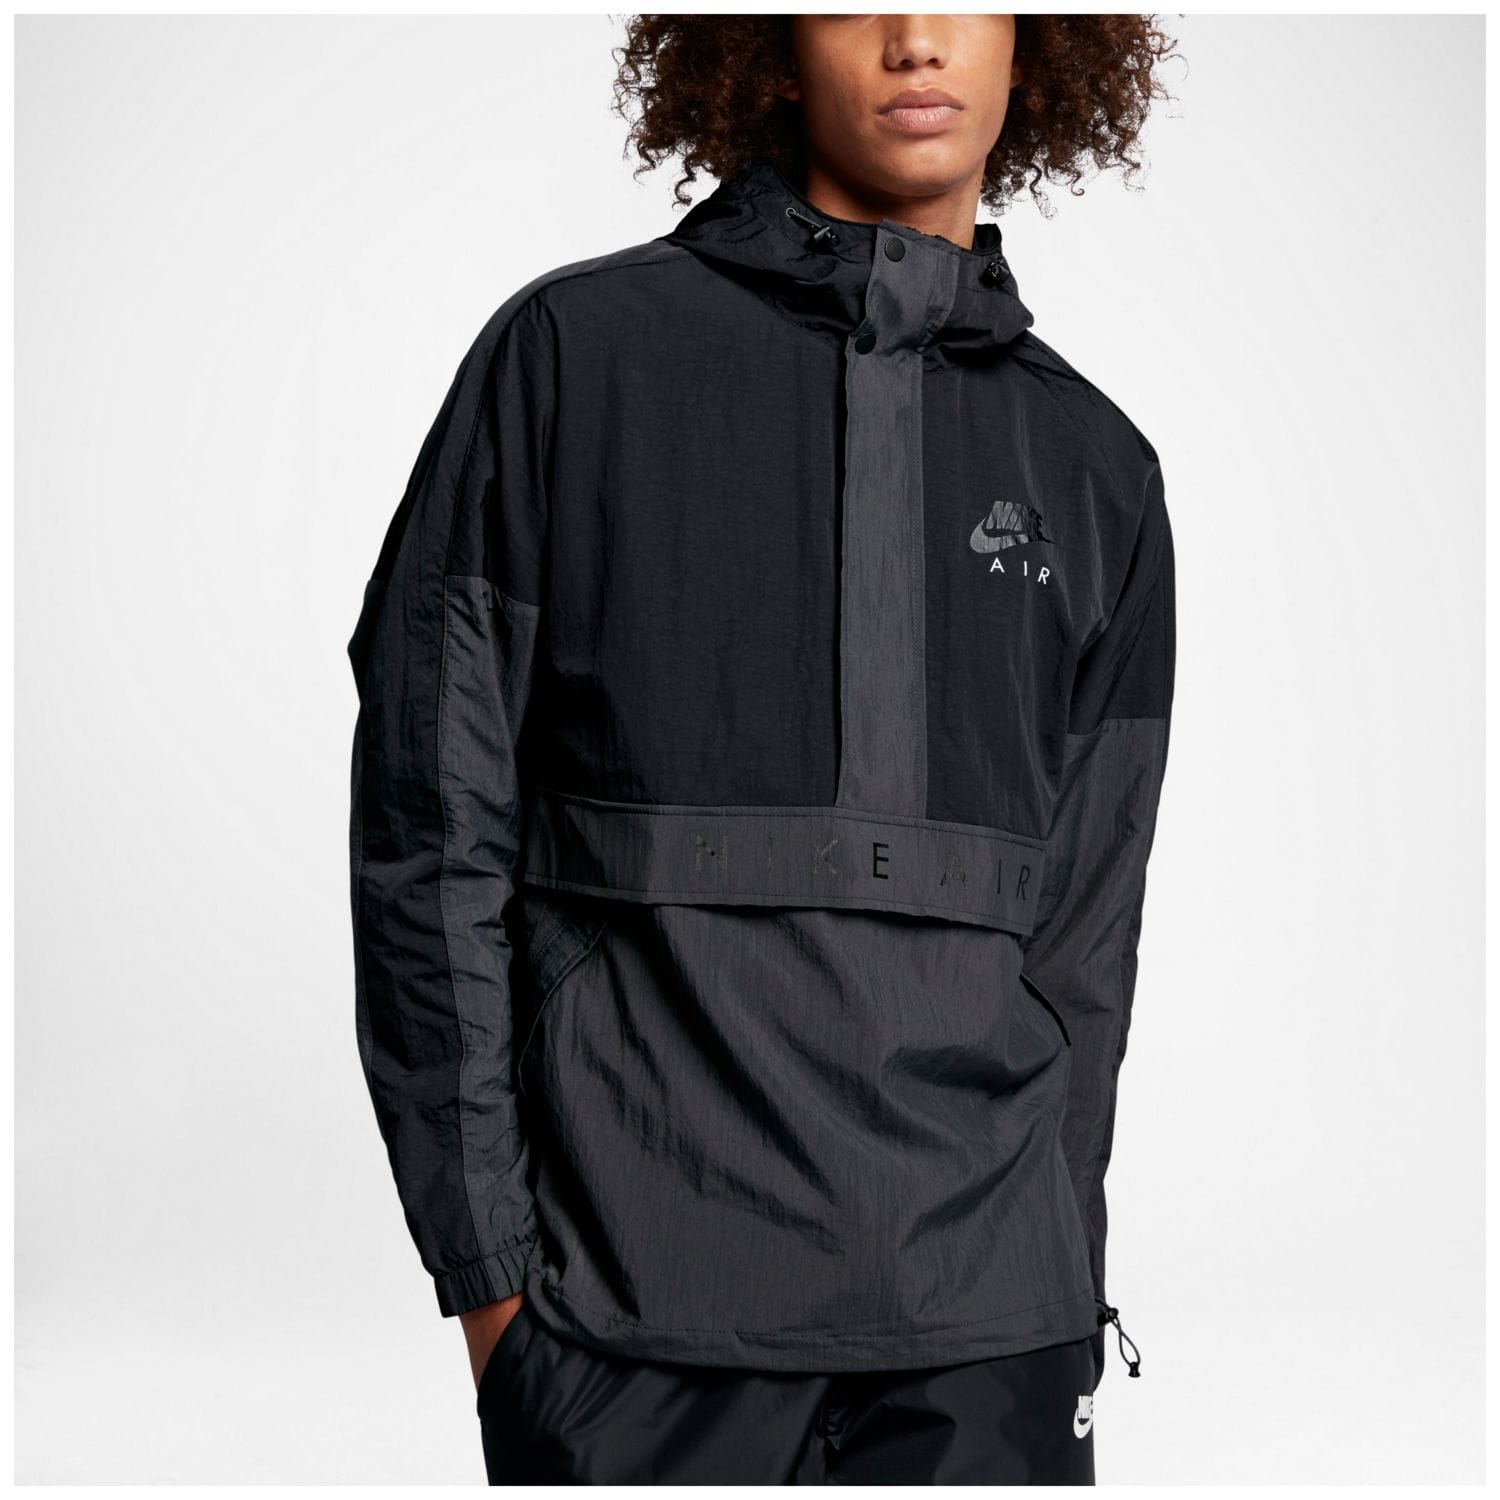 Nike Nike Air Anorak Jacket Size s - Light Jackets for Sale - Grailed 73b33653f9c0